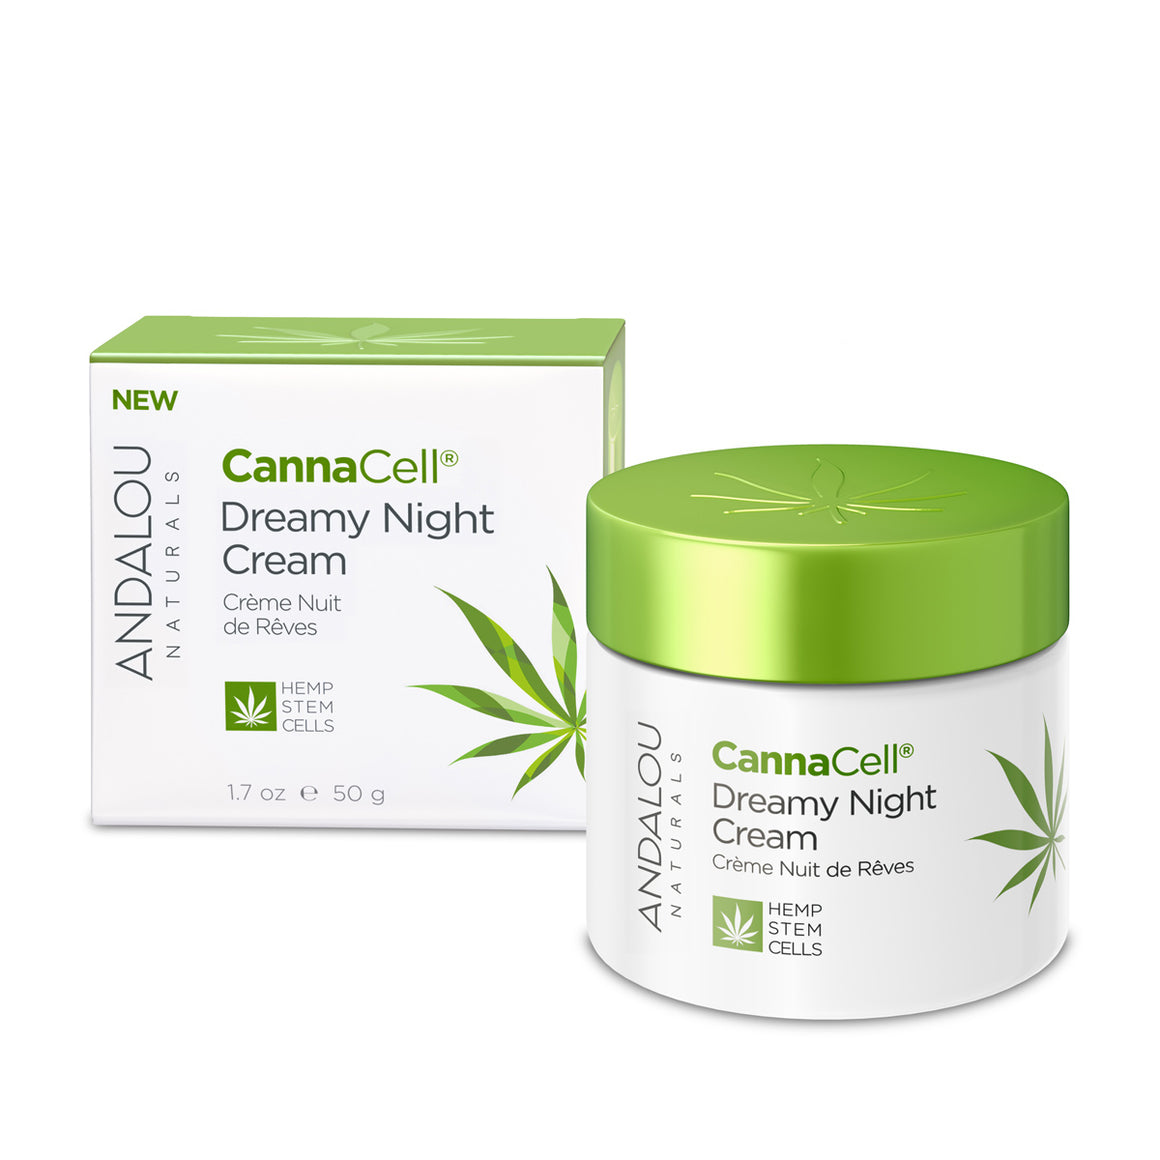 CannaCell® Dreamy Night Cream